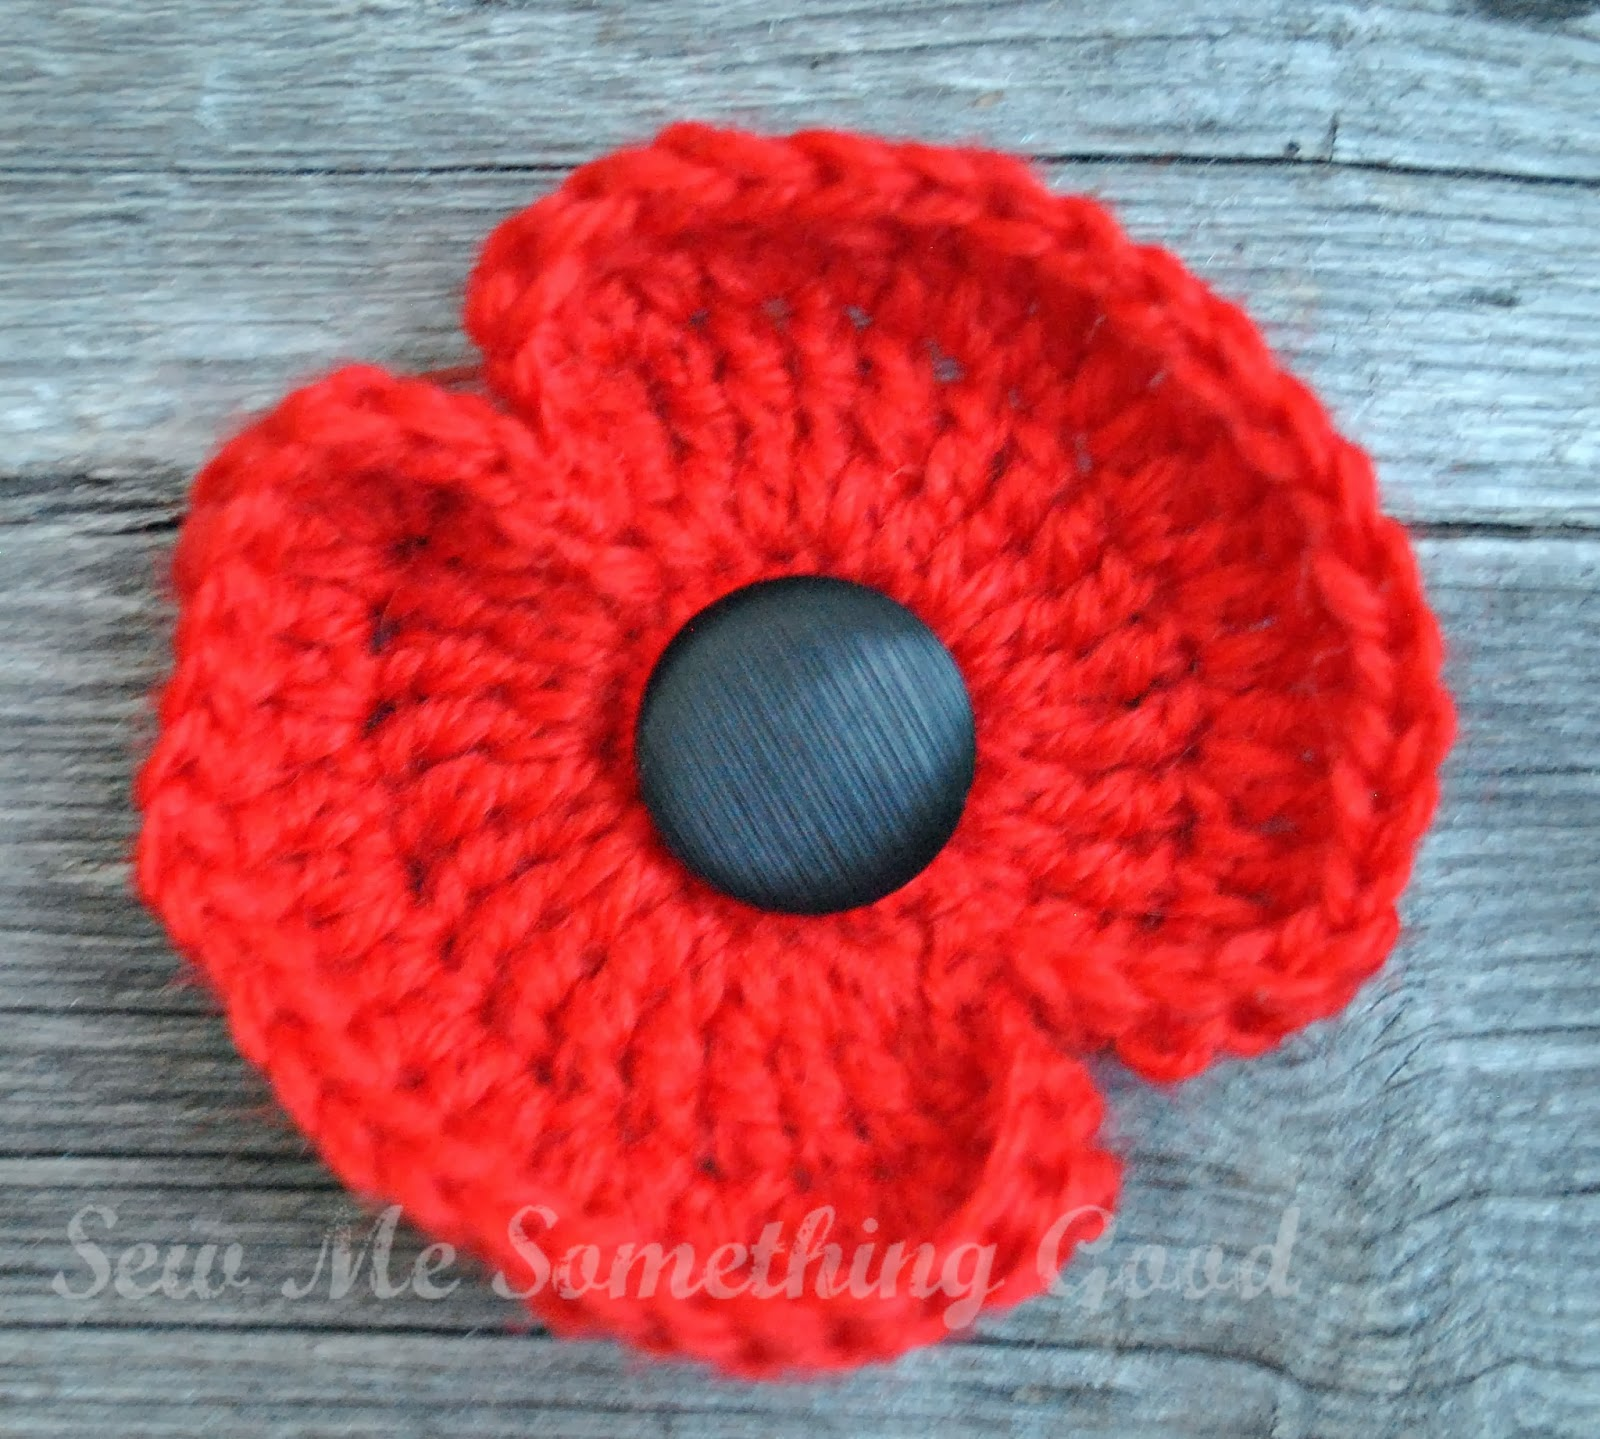 Free Crochet Poppy Brooch Pattern : Sew Me Something Good: A handmade reminder